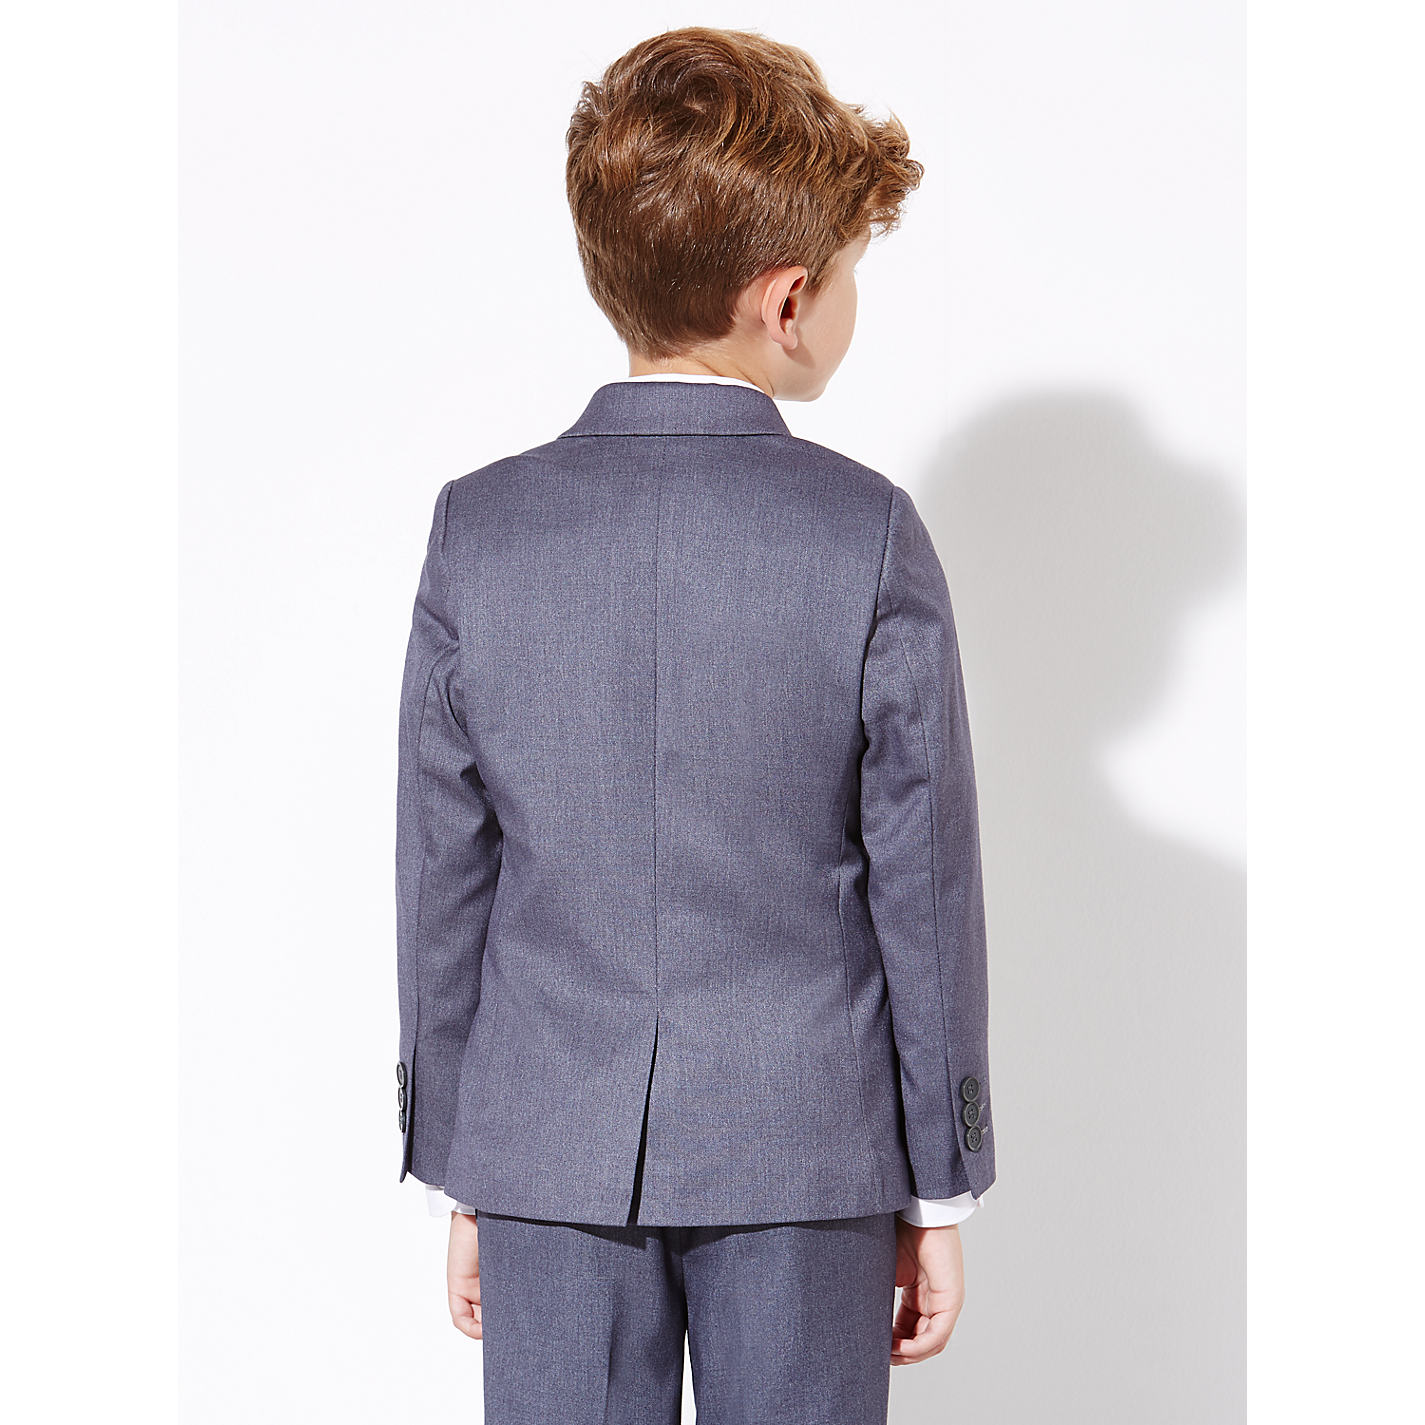 john lewis heirloom collection boys suit jacket grey john #0: alt2 prod exlrg